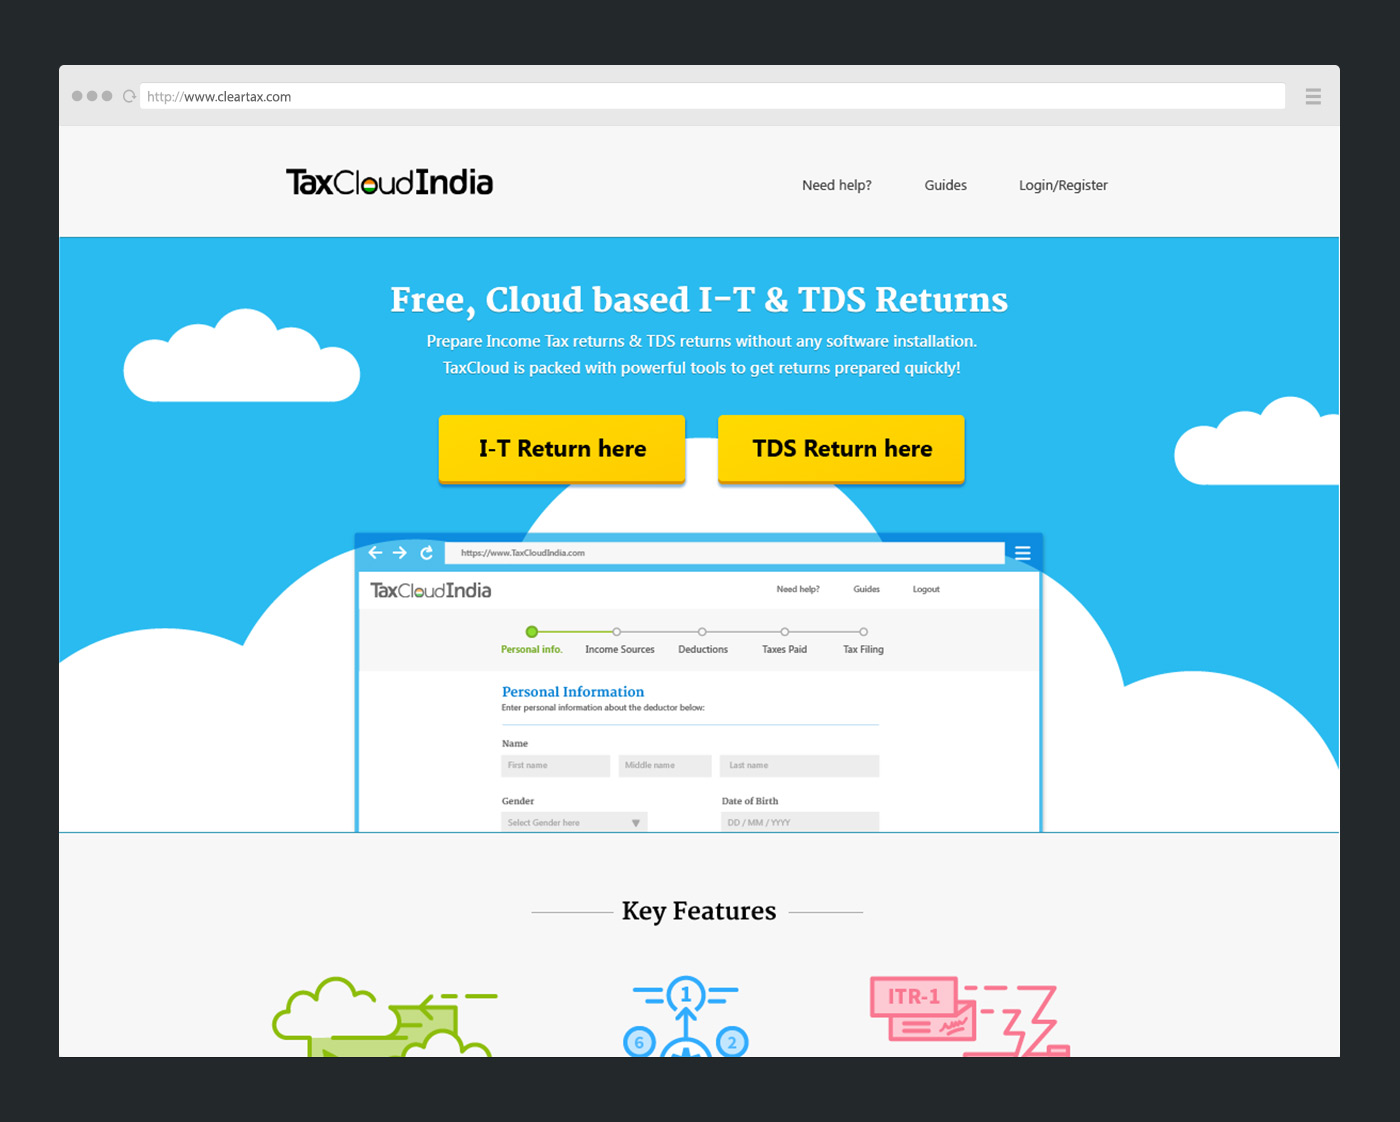 TaxCloud home page design: Header